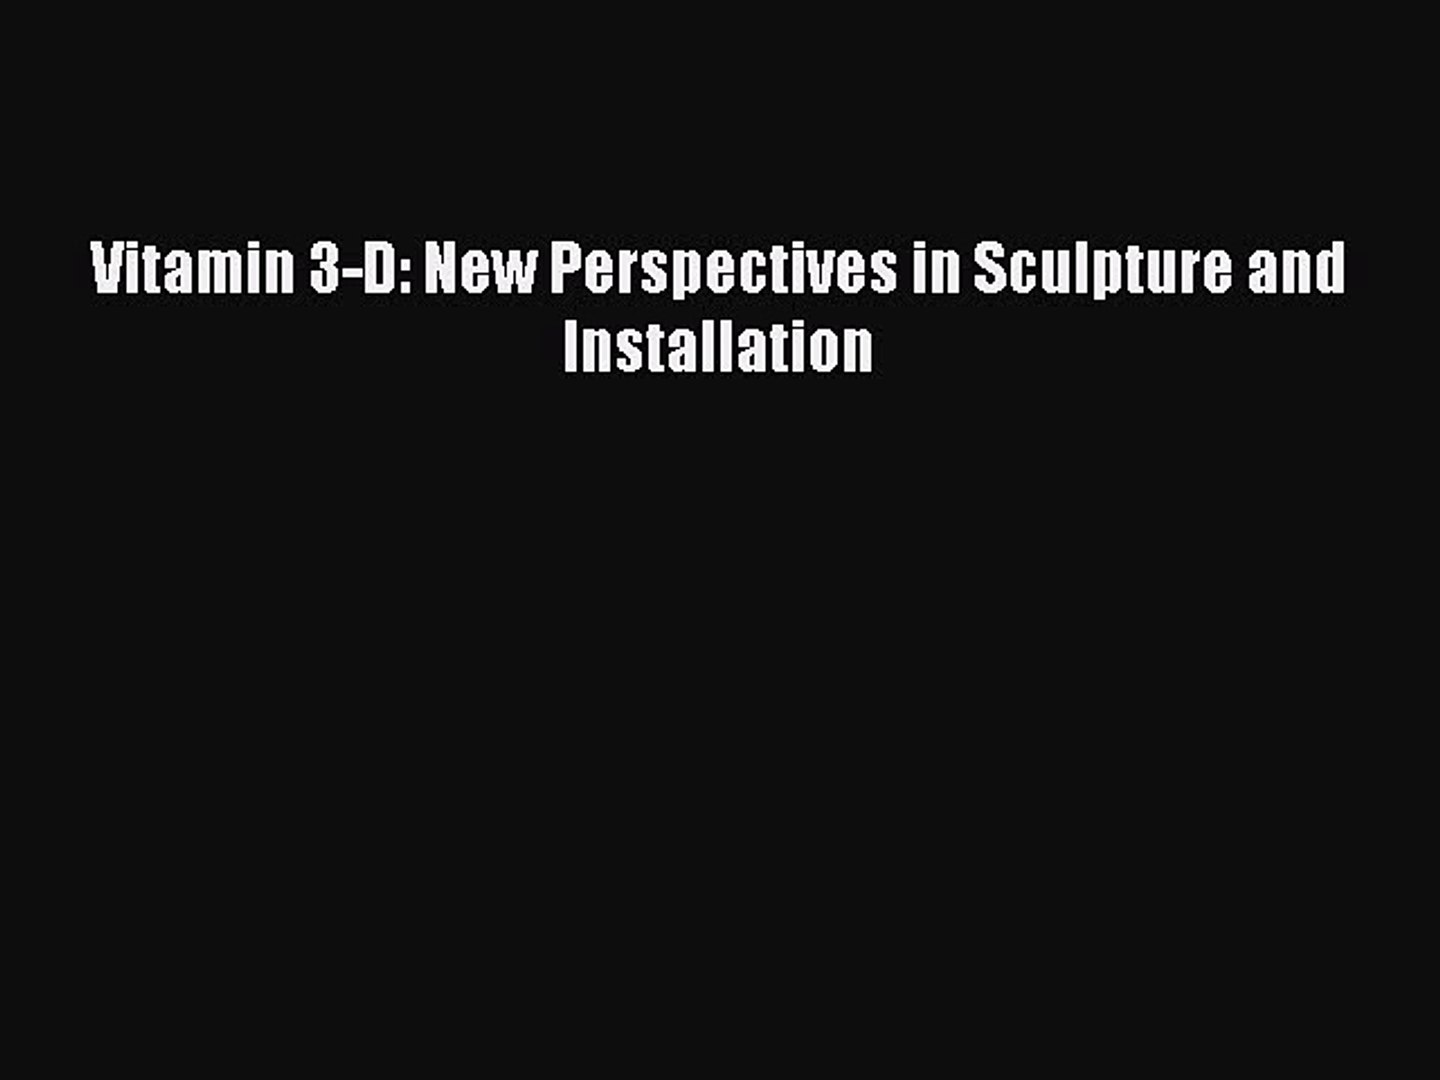 Vitamin 3-D New Perspectives in Sculpture and Installation